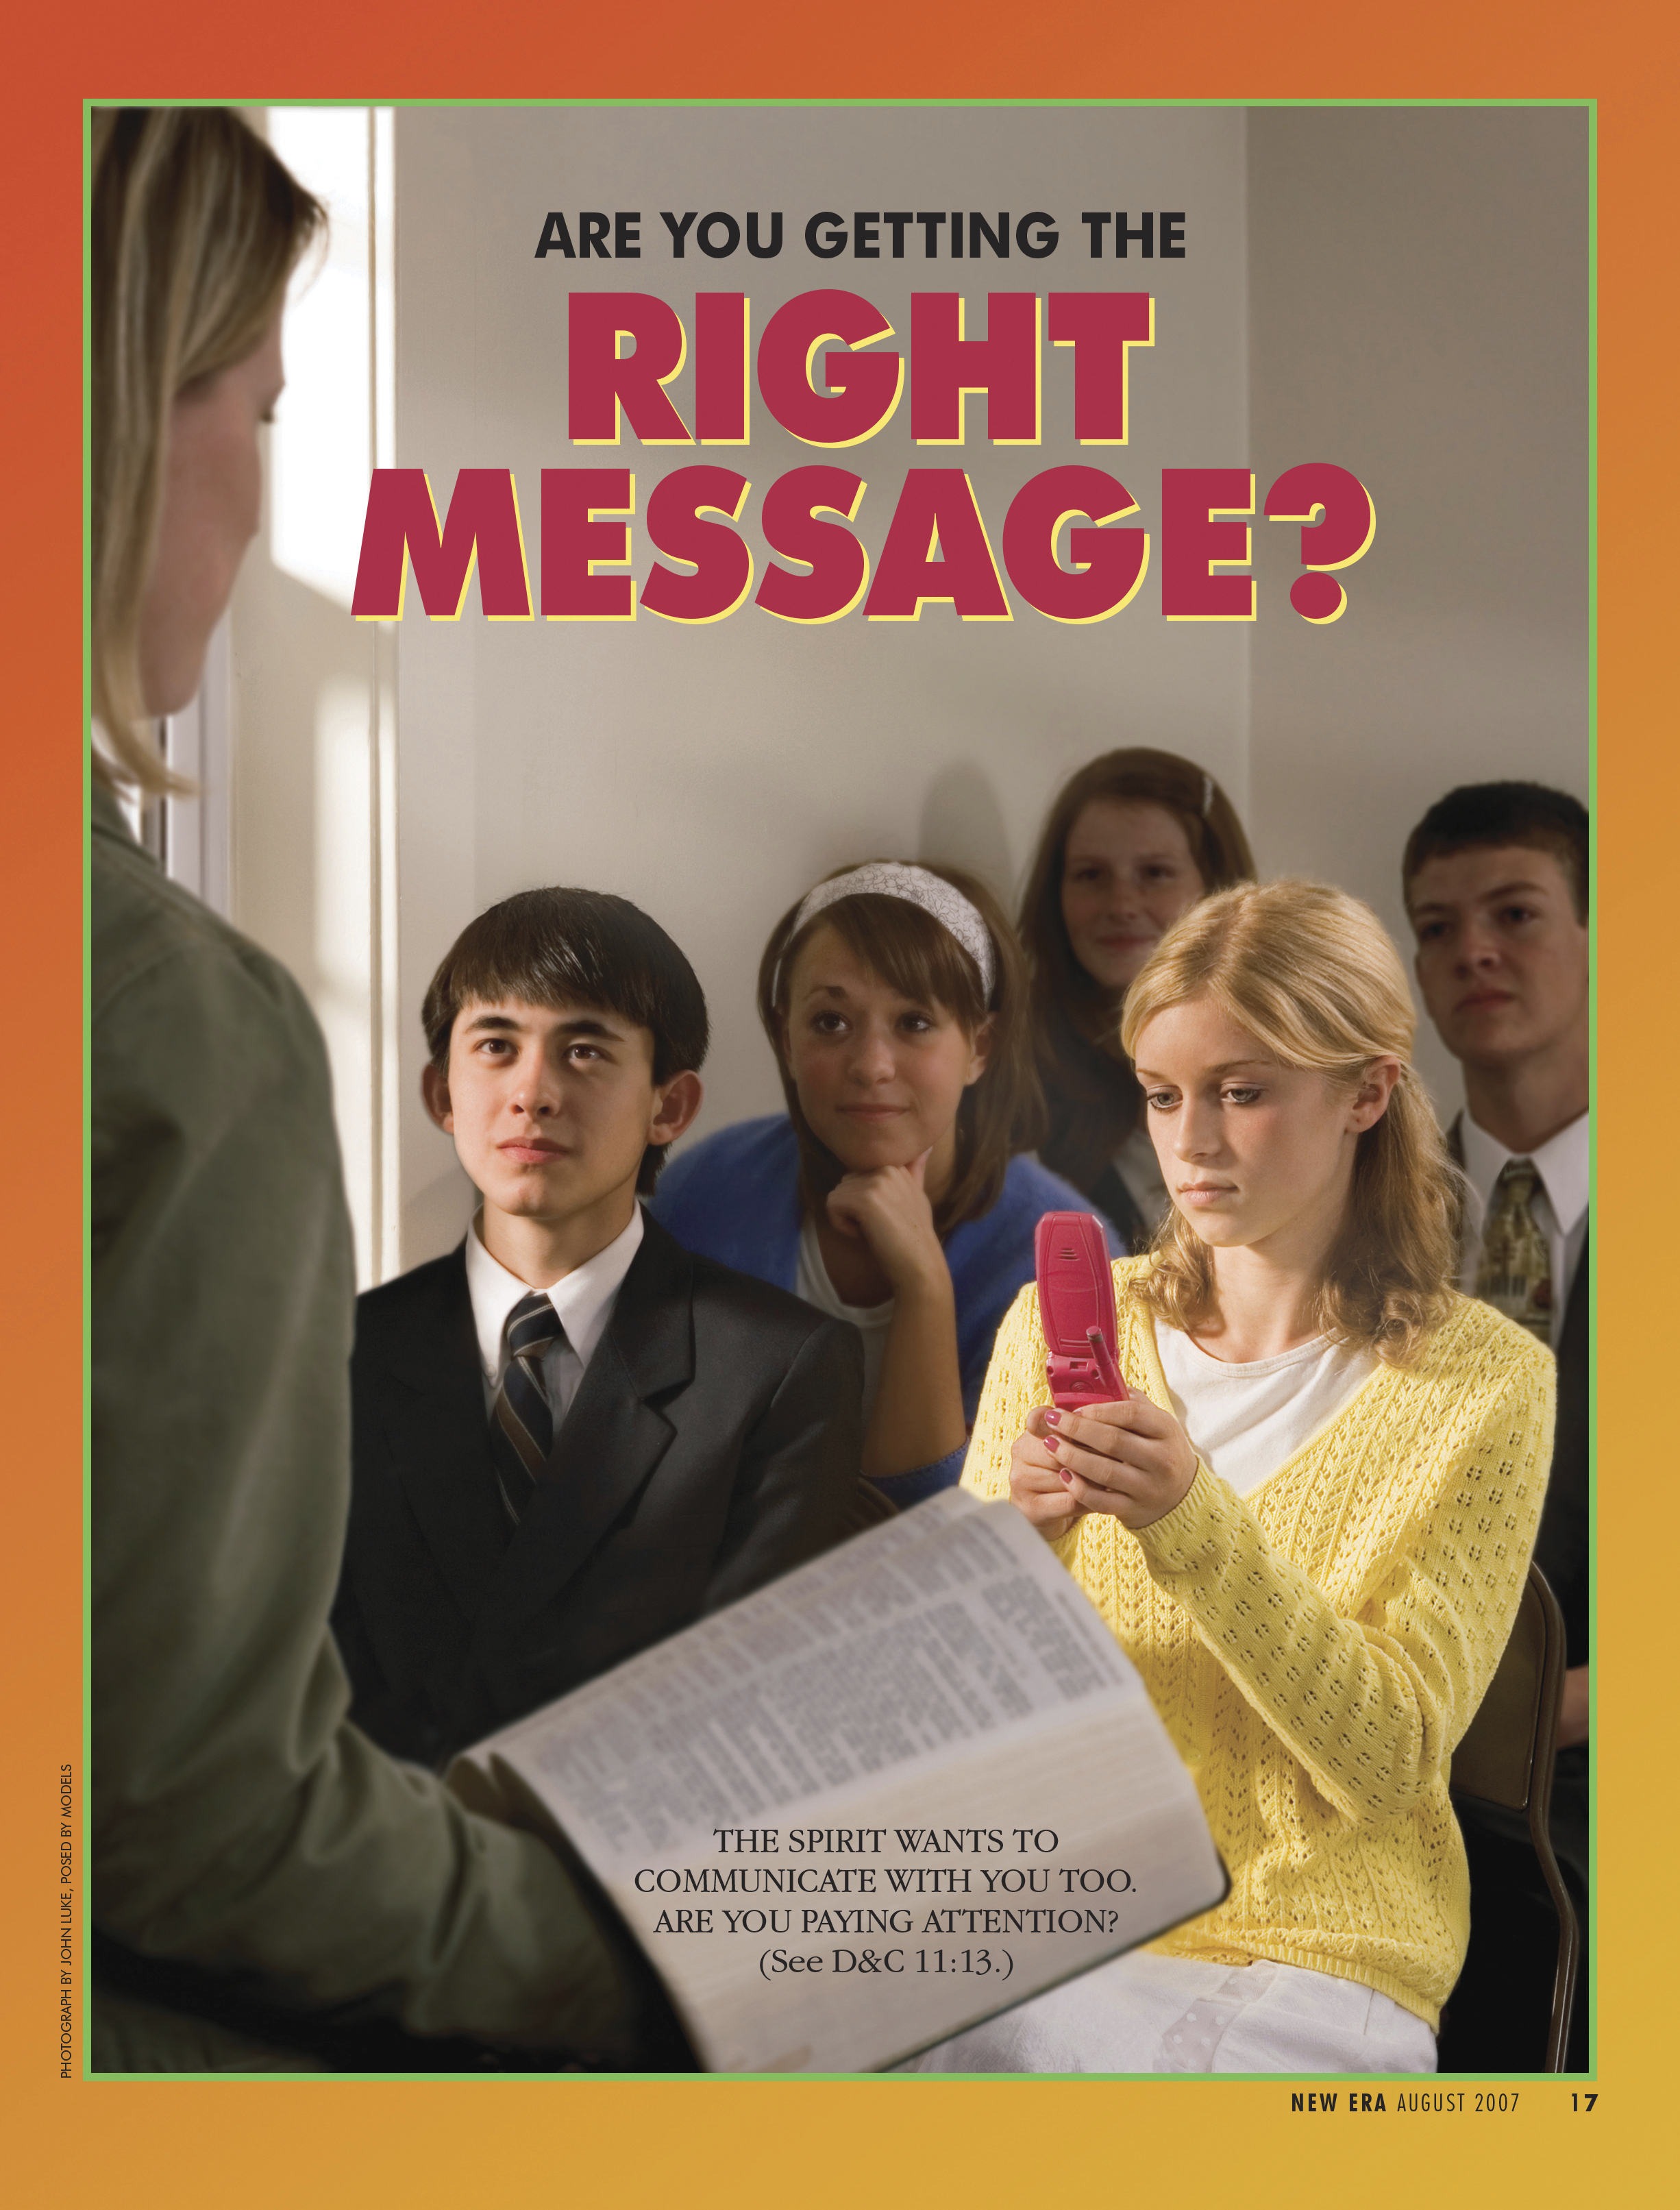 Are You Getting the Right Message? The Spirit wants to communicate with you too. Are you paying attention? (See D&C 11:13.) Aug. 2007 © undefined ipCode 1.